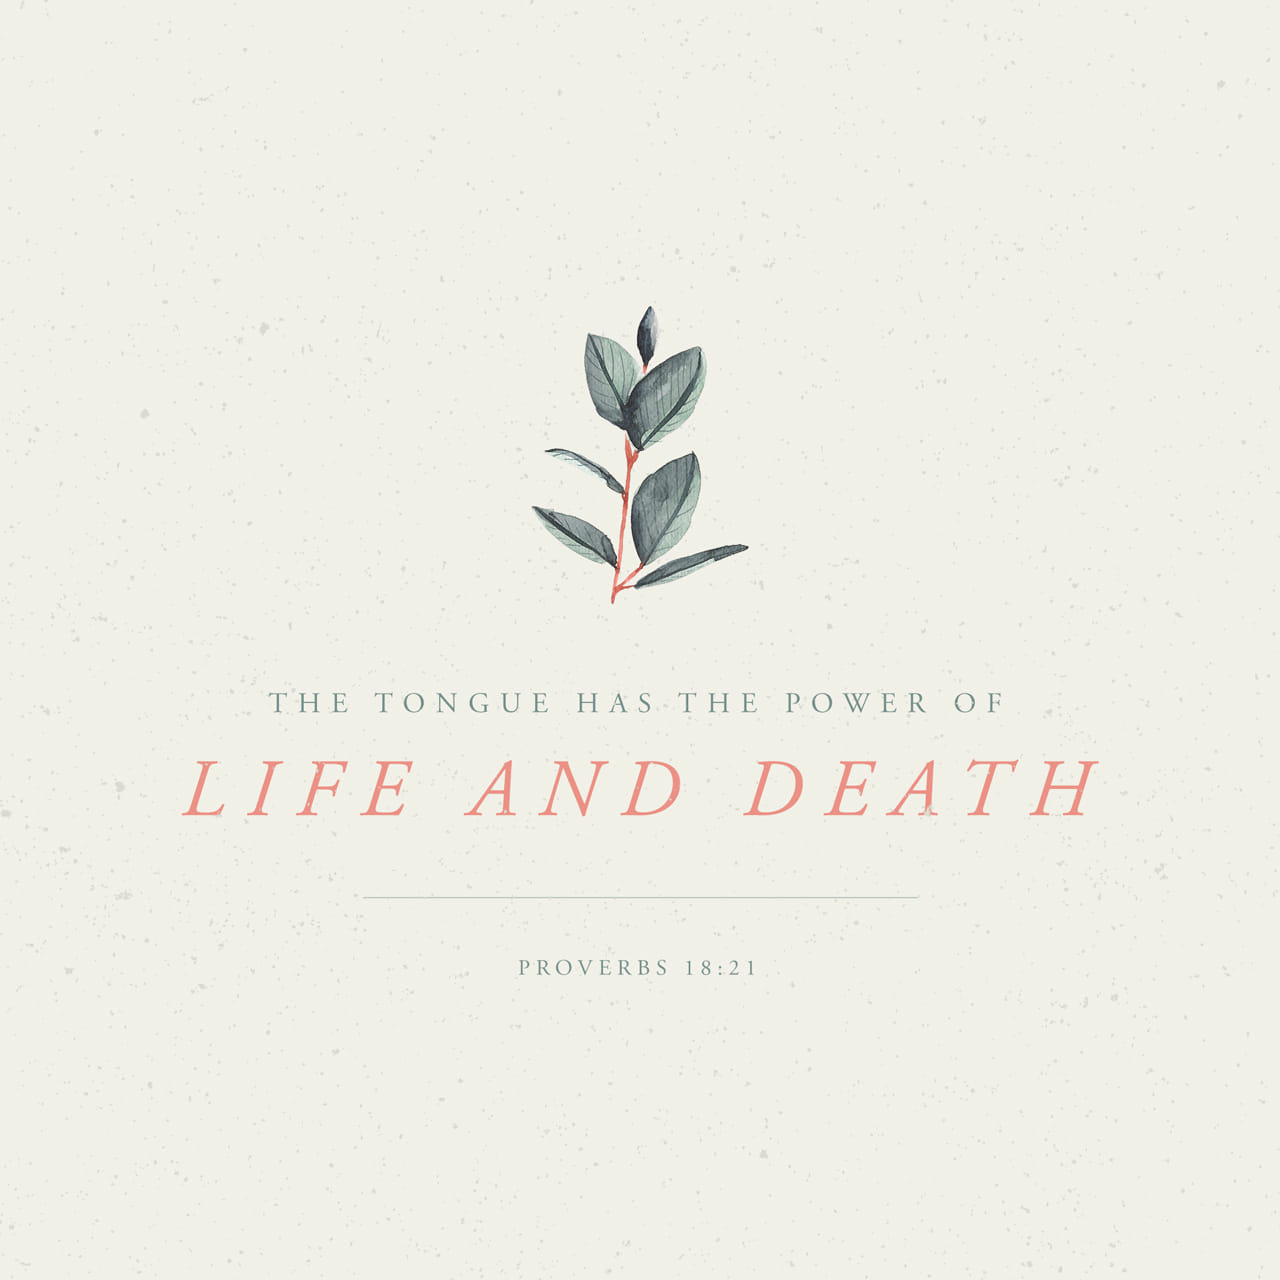 Proverbs 18:21 Death and life are in the power of the tongue, And those who love it will eat its fruit. | New King James Version (NKJV)